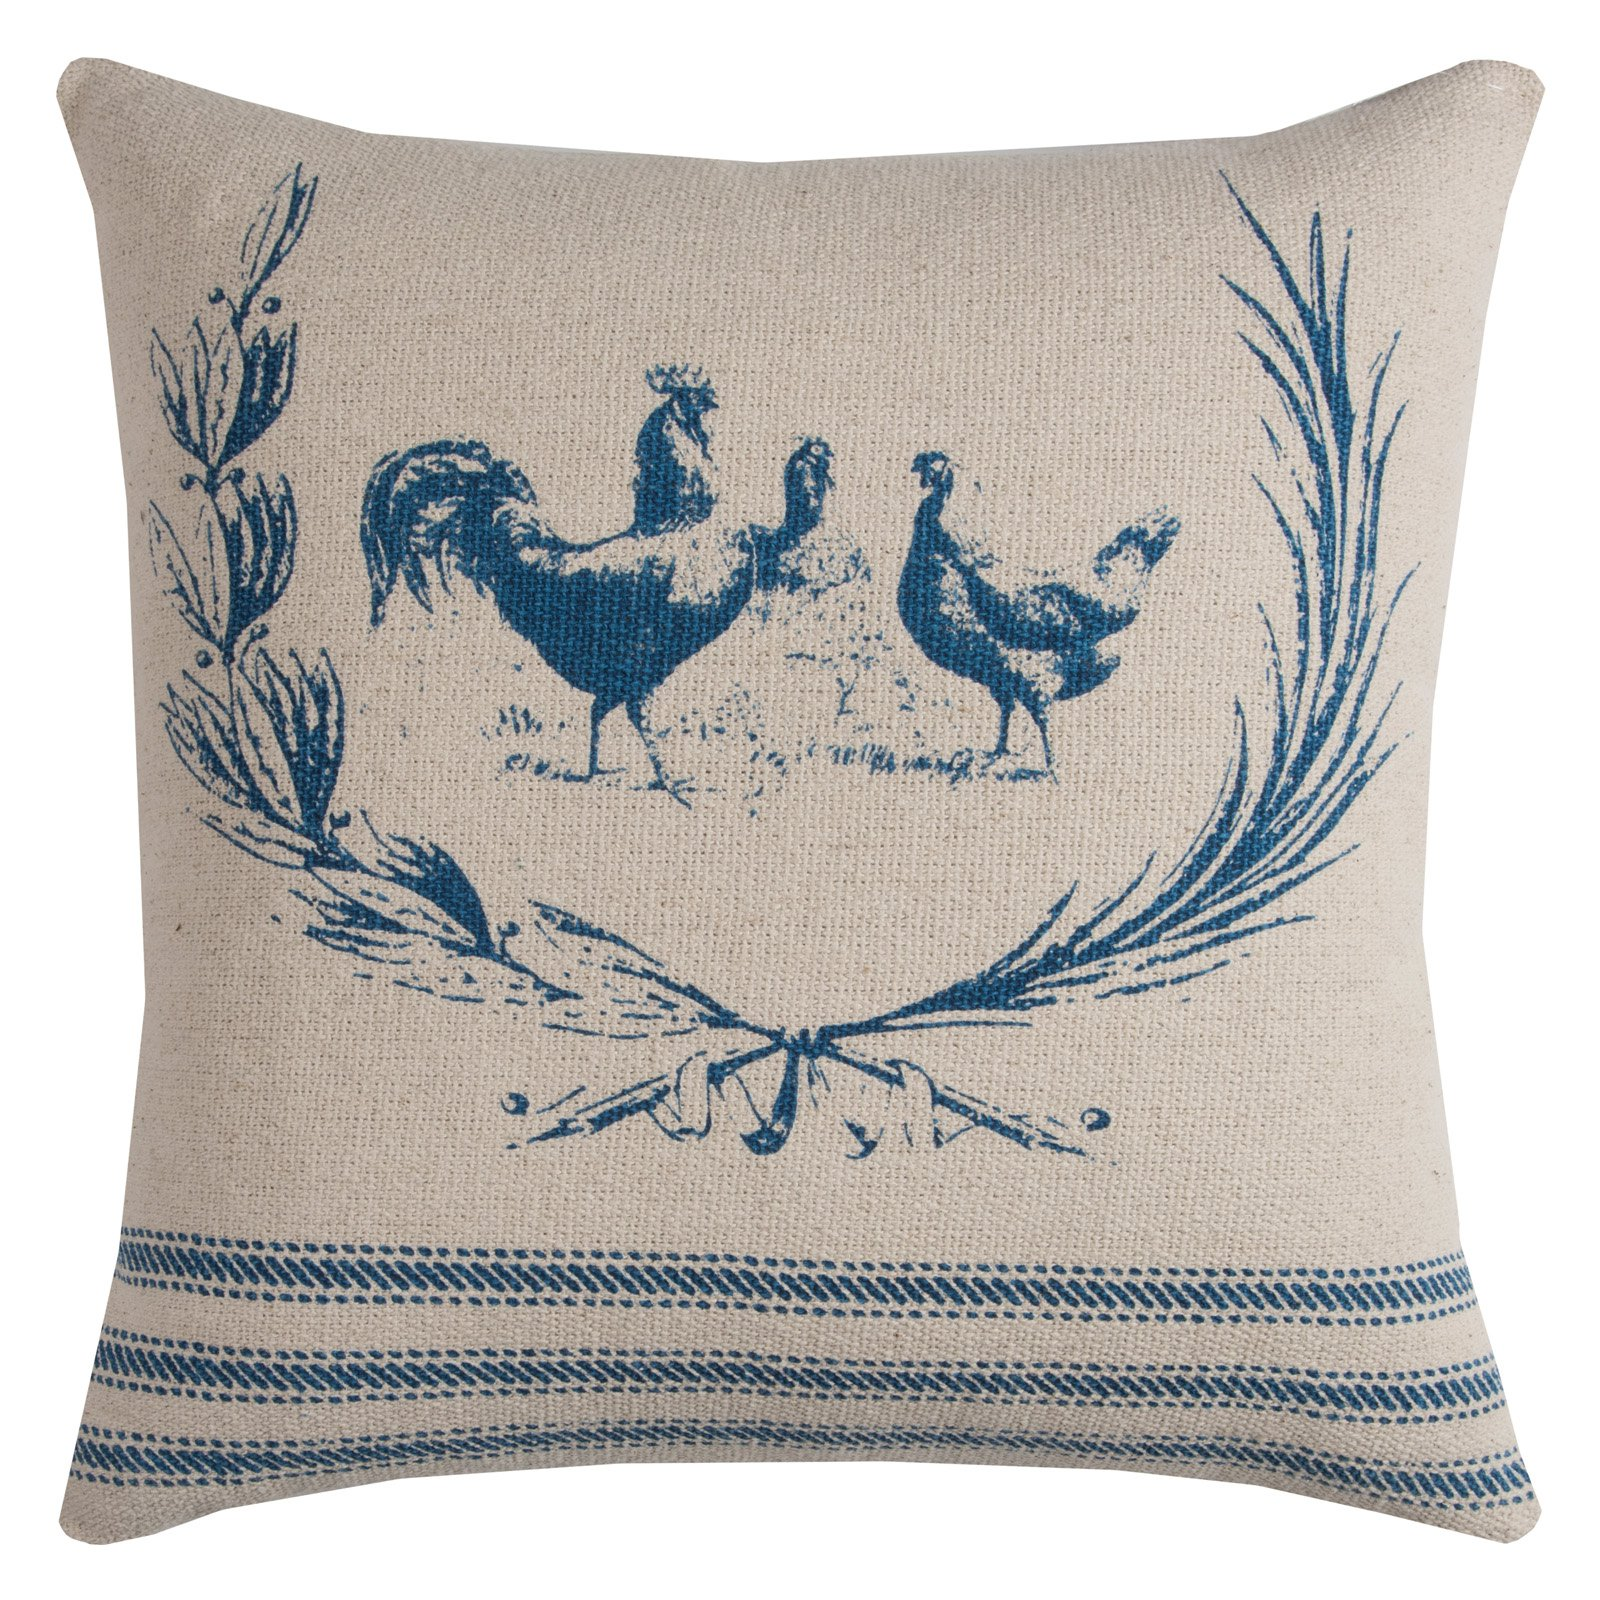 """Rizzy Home Farmhouse Rooster Cotton With Zipper Closer Decorative Throw Pillow, 20"""" x 20"""", Red"""